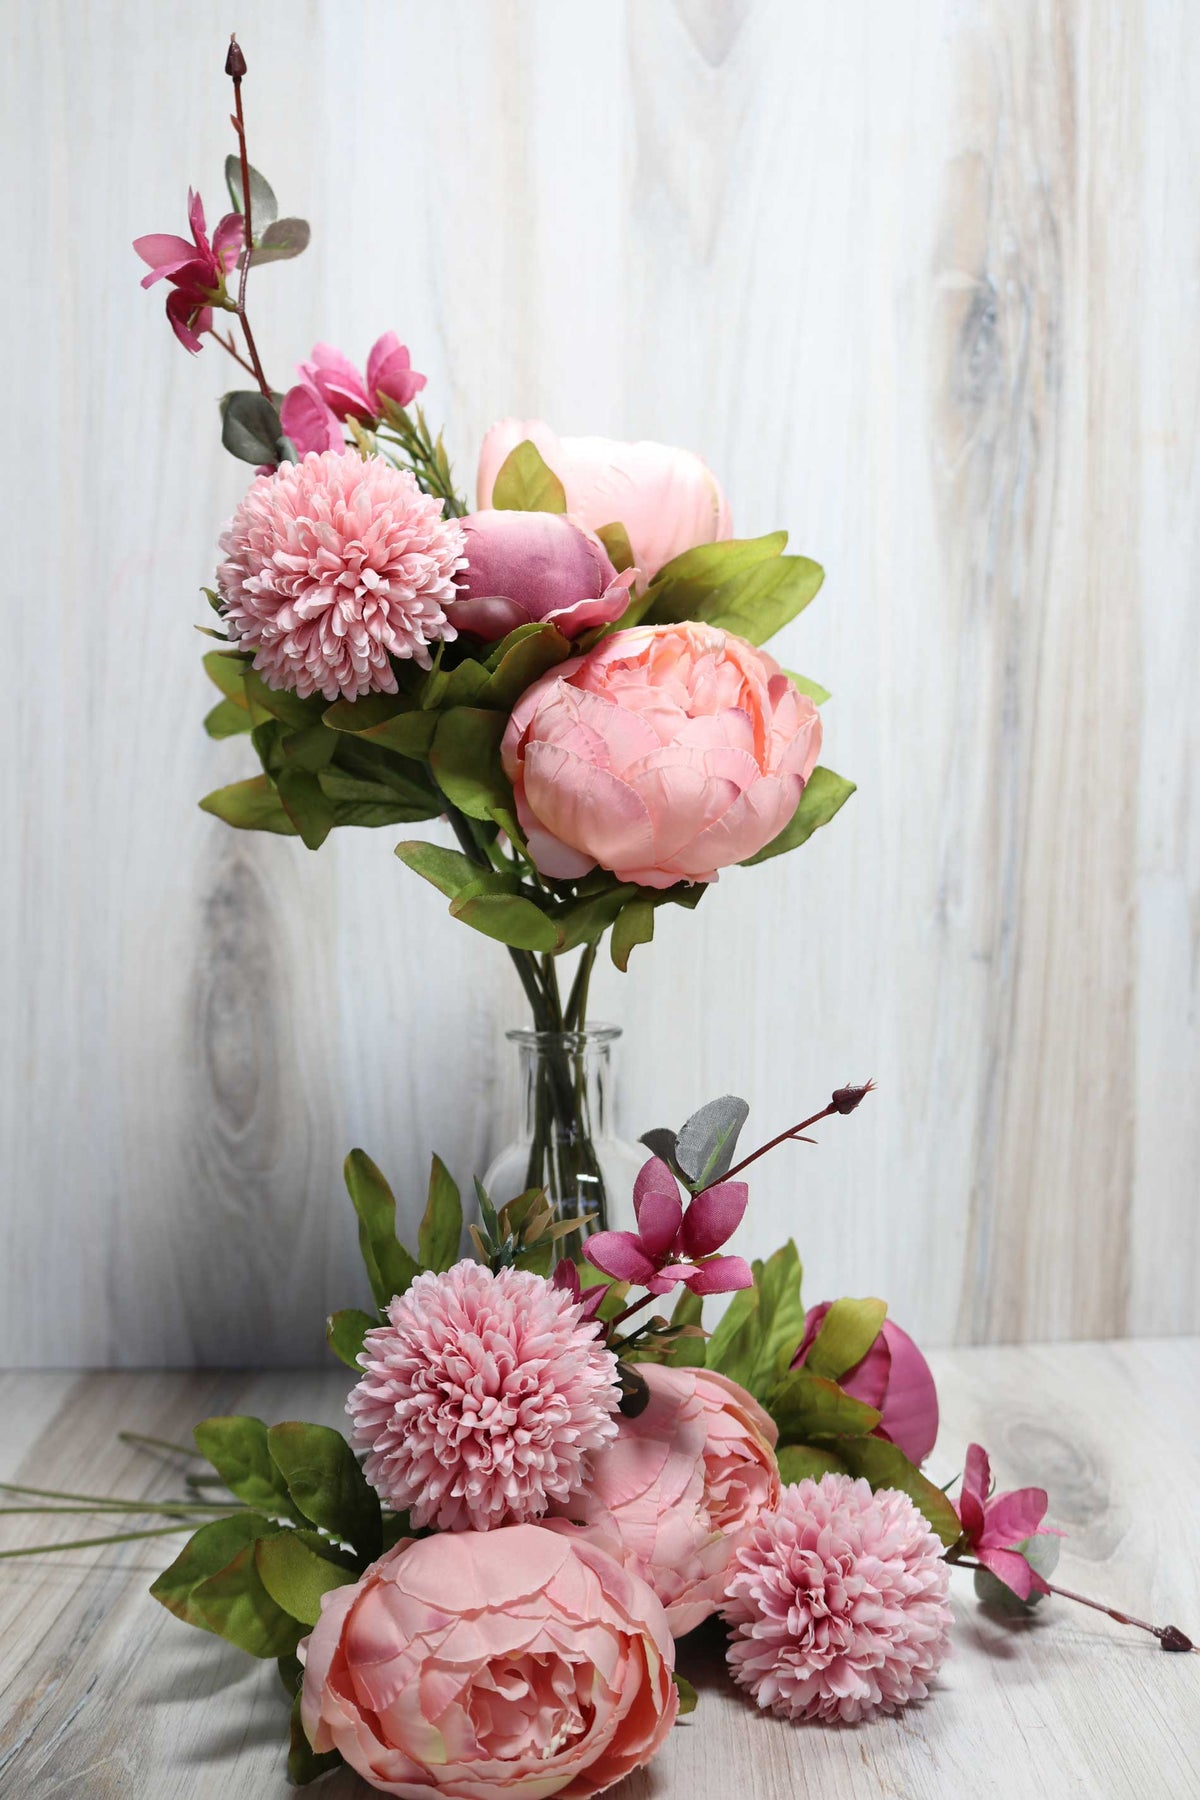 Dandelion And Peony Bunch - Vintage Pink